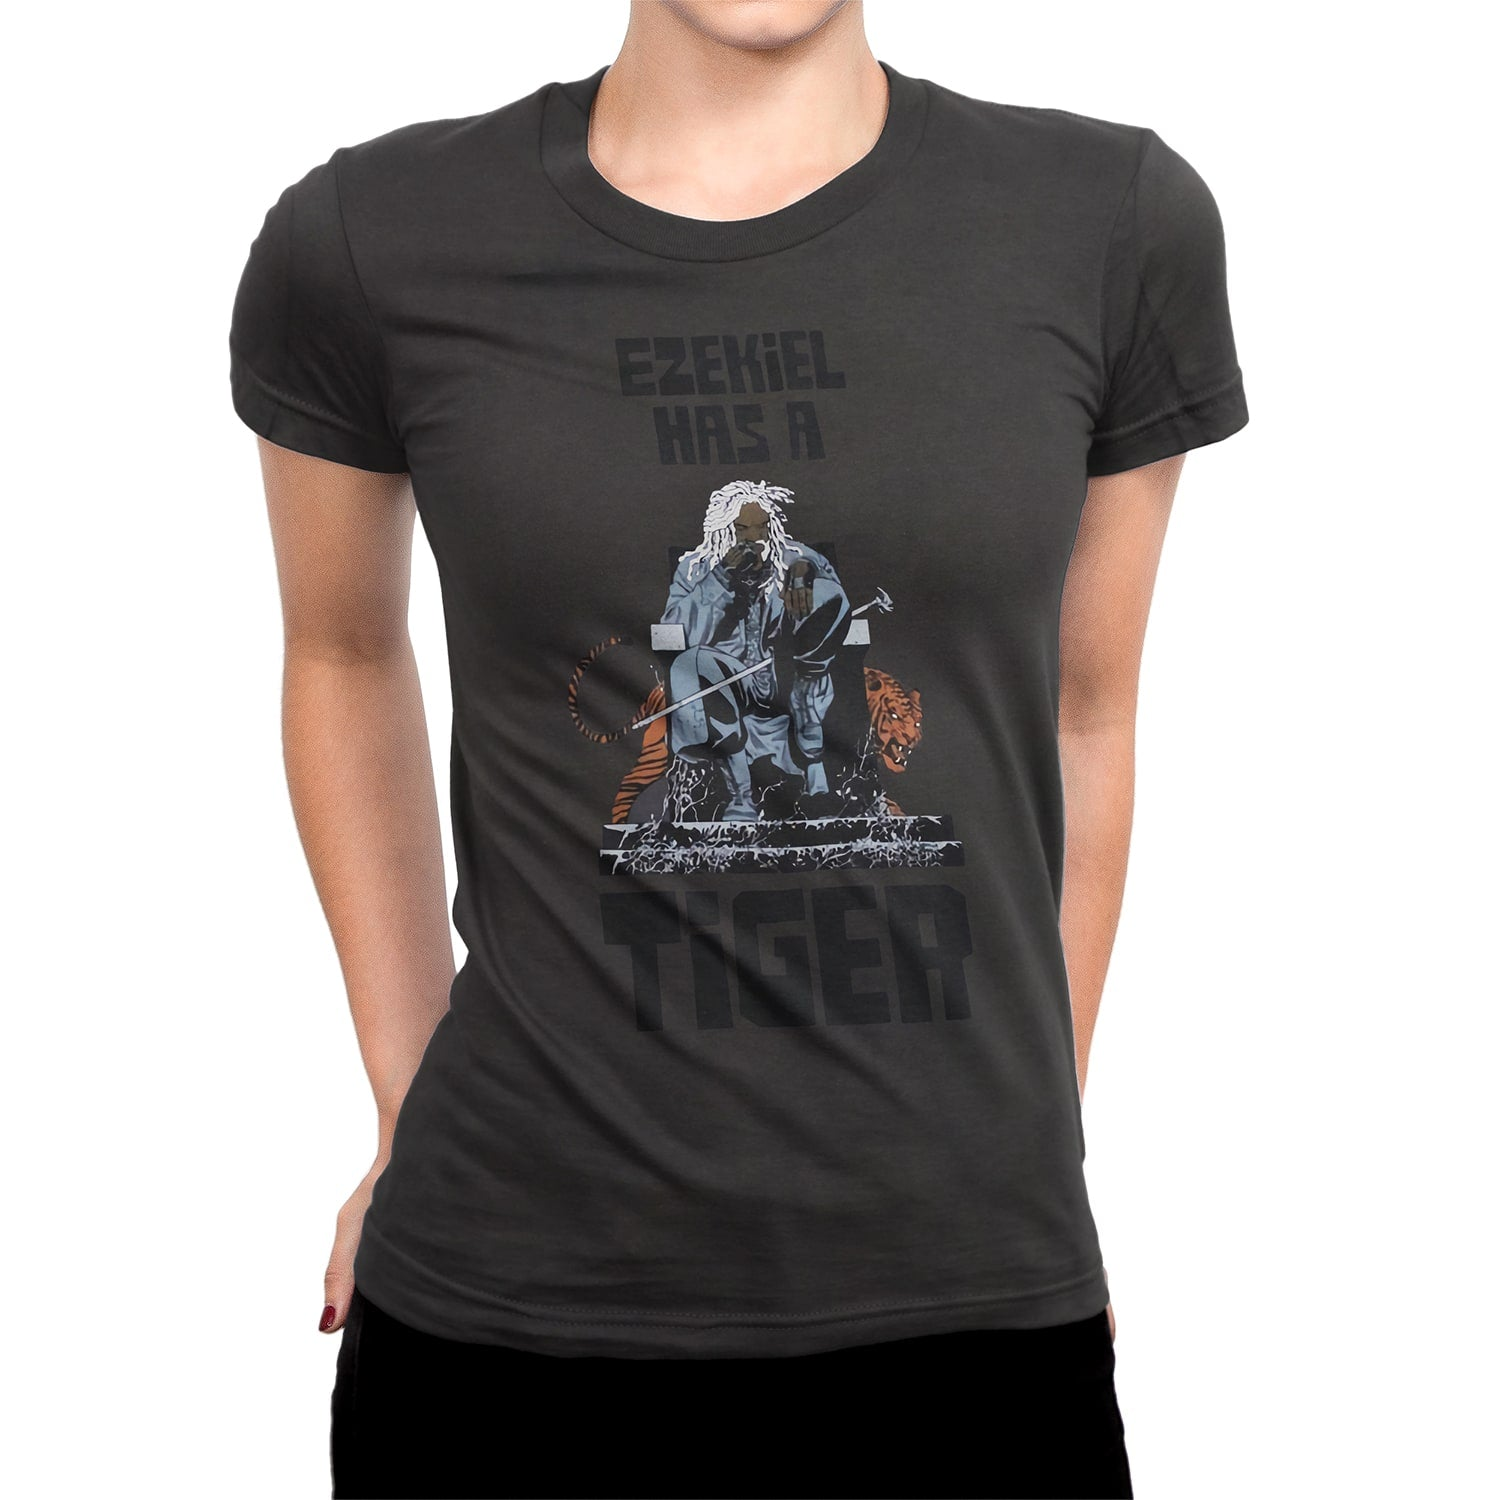 "THE WALKING DEAD: ""Ezekiel Has a Tiger"" T-Shirt (Women's)"